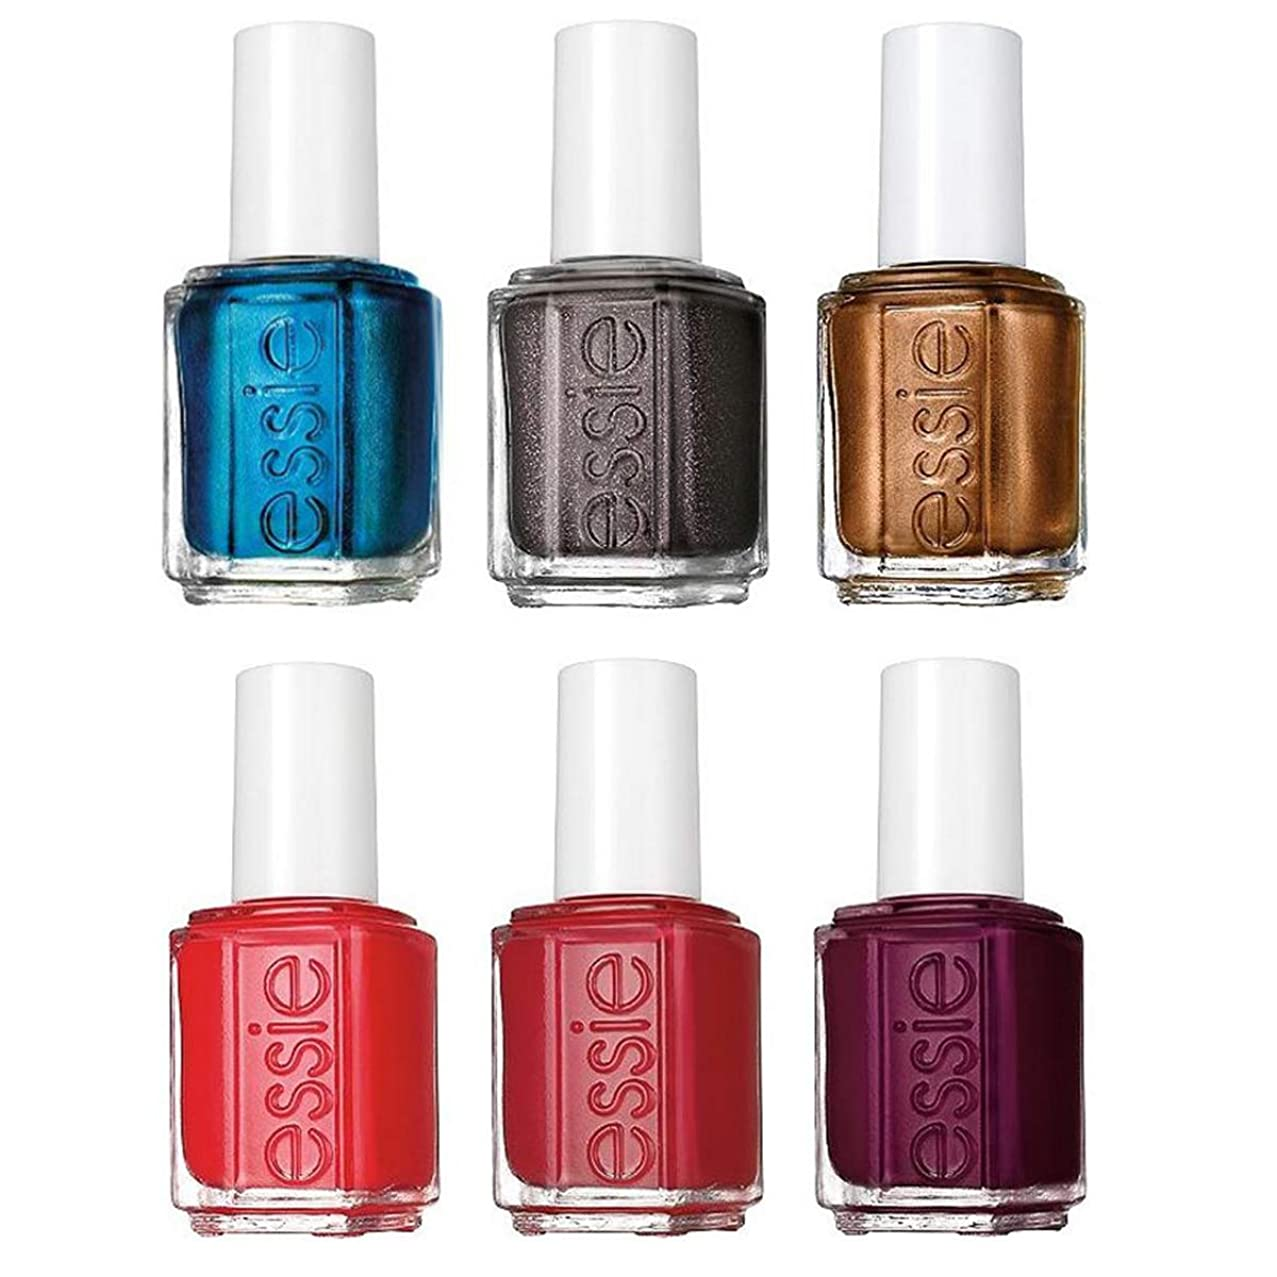 Essie (6 Piece) Essie Nail Polish Set For Girls Birthday Gifts For Women Bachelorette Party Favors